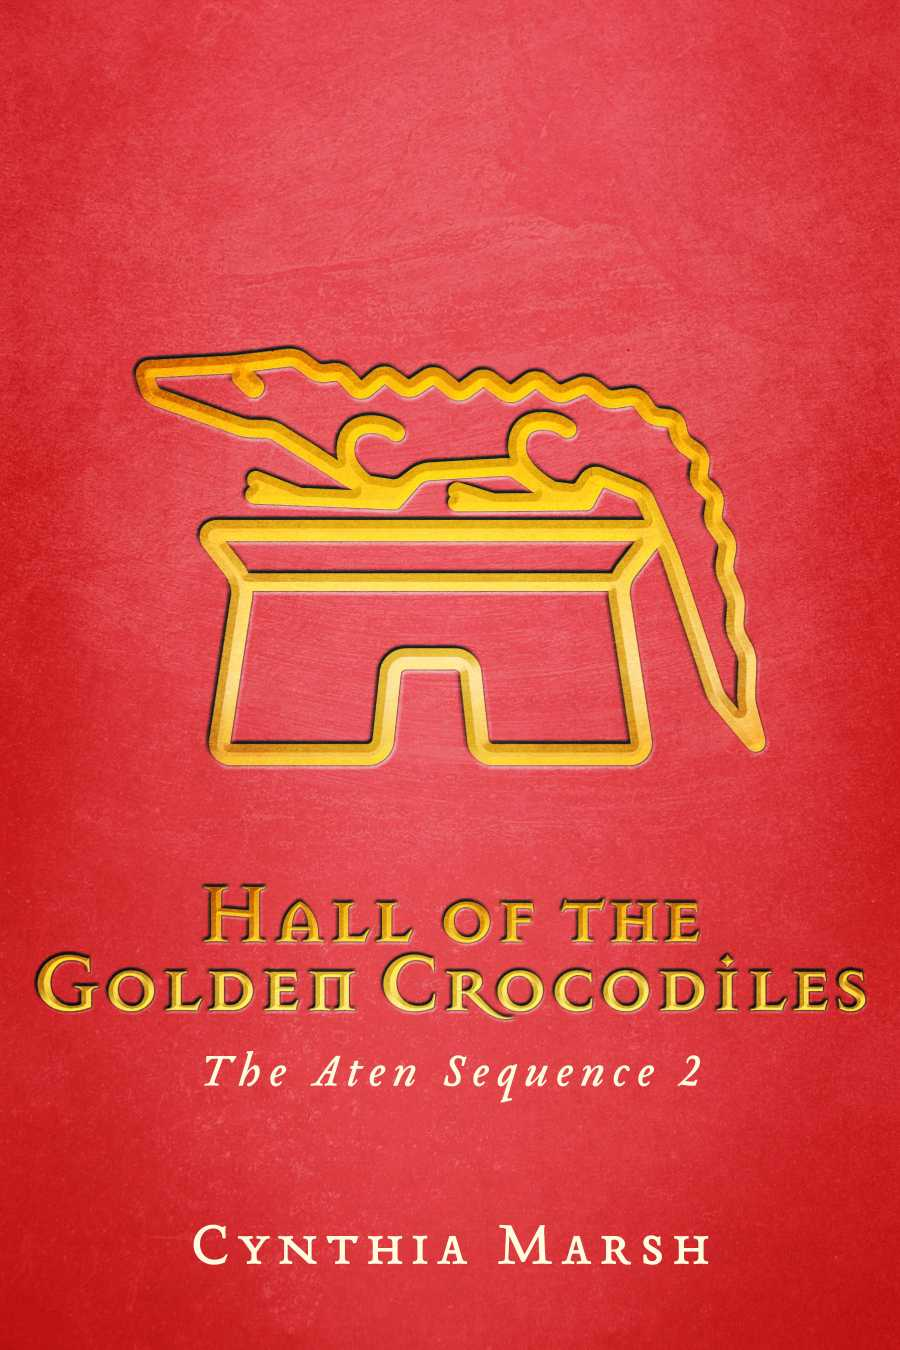 Hall of the Golden Crocodiles - The Aten Sequence 2